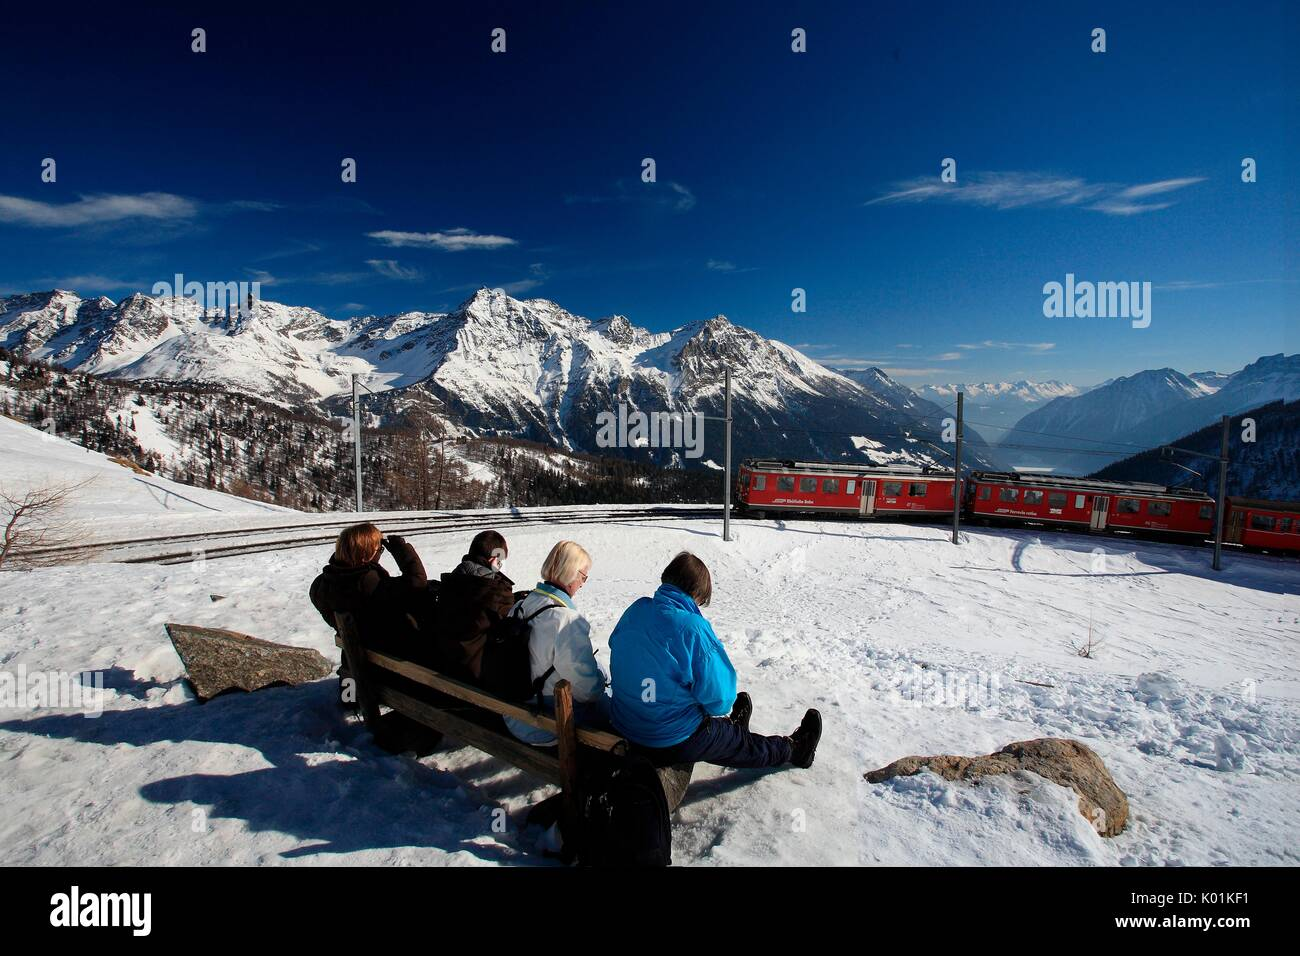 Tourists looking at the Bernina Express passing by the Alp Grum in the Val Poschiavo, Switzerland Europe - Stock Image